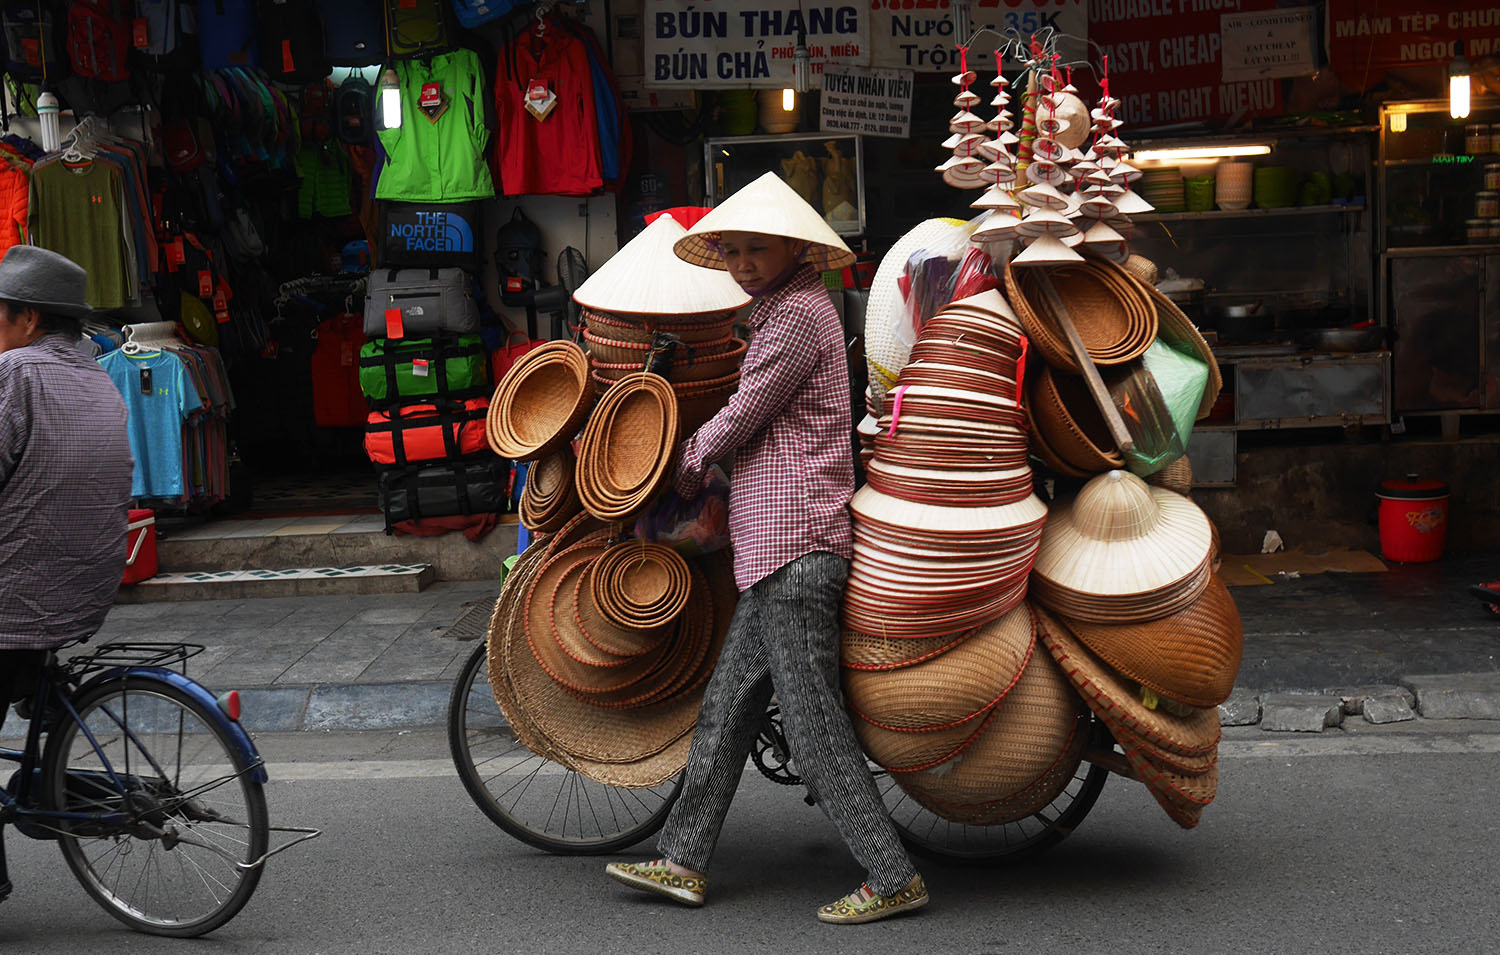 [Vietnam travel guide] Hanoi: The chaos and charms of the capital